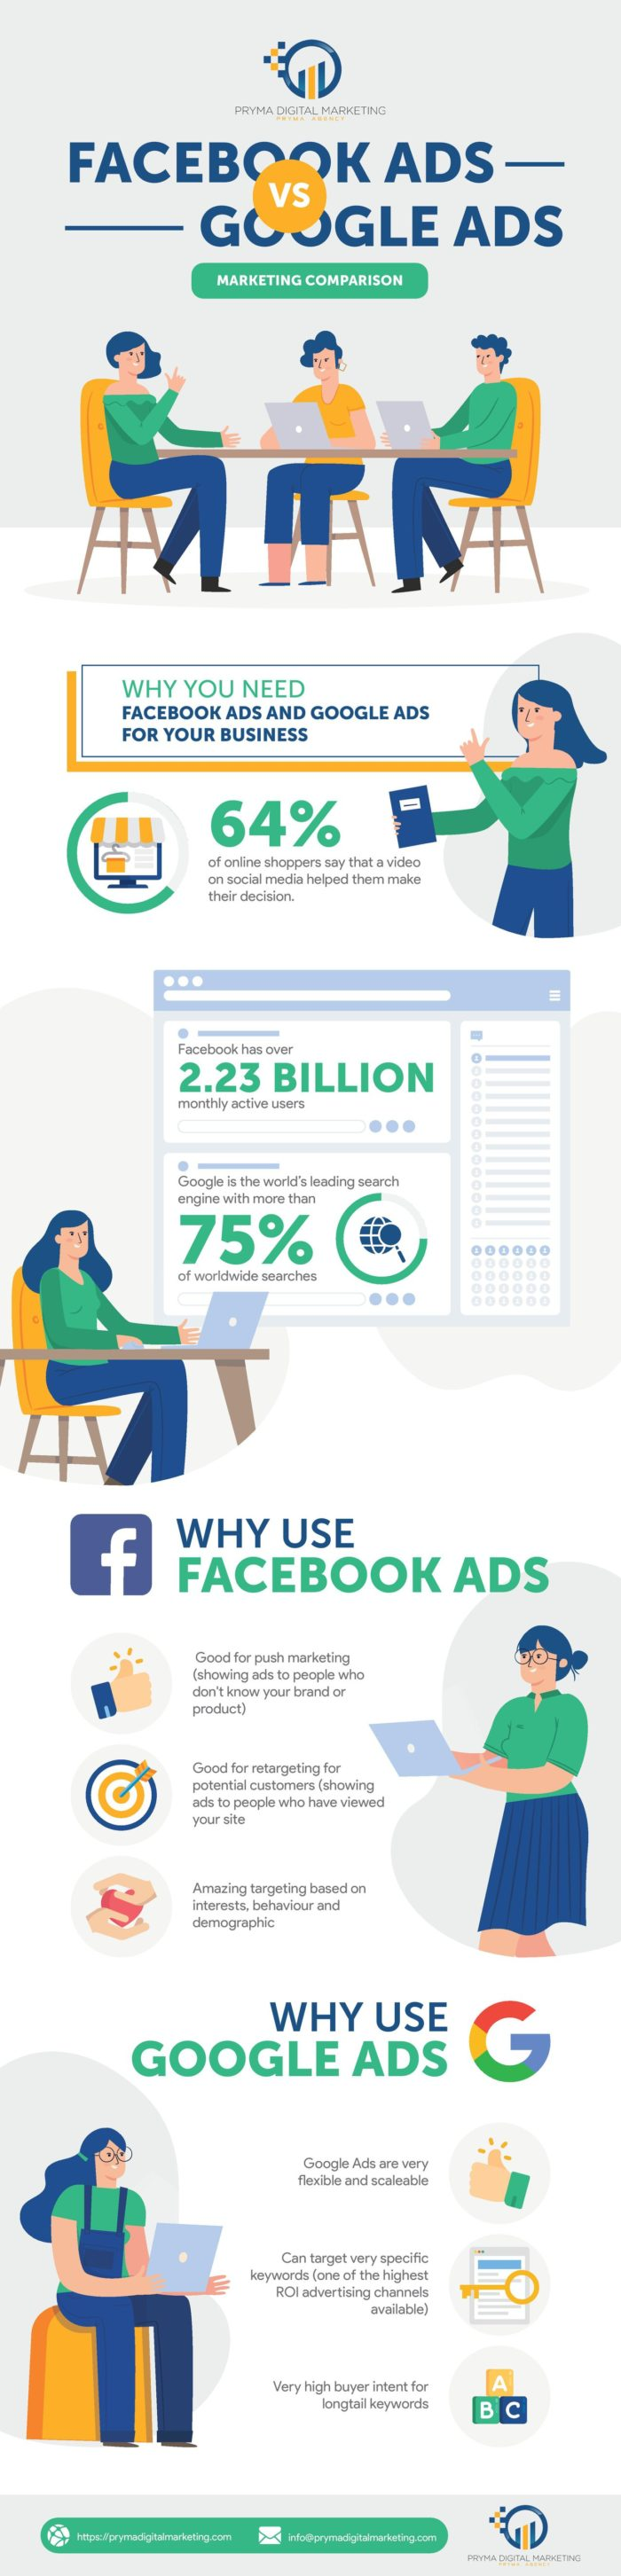 Marketing Comparison: Facebook Ads Vs. Google Ads